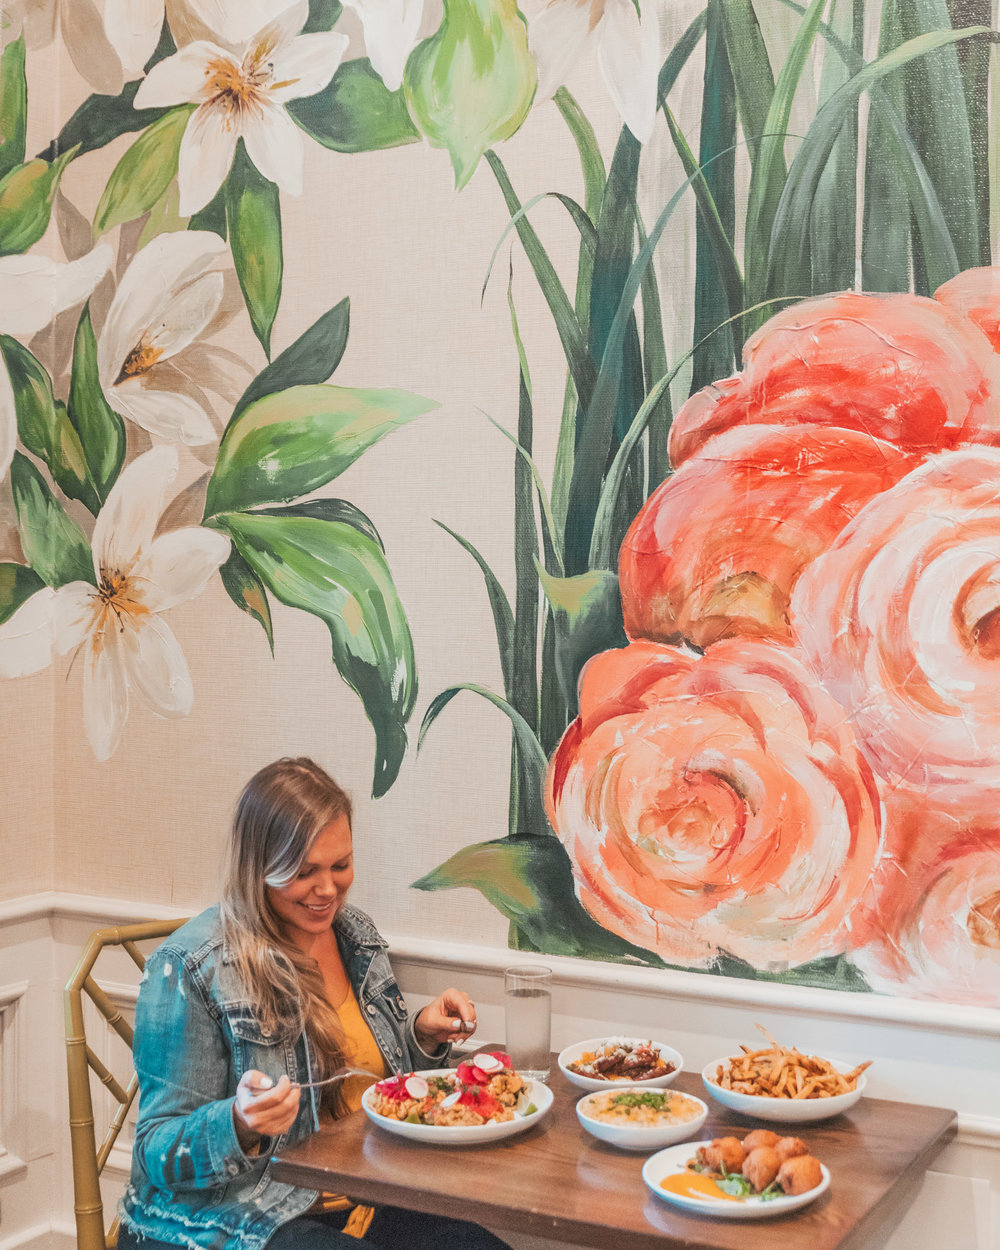 Dining at The Country Club restaurant // The Most Instagrammable Spots in New Orleans // #readysetjetset www.readysetjetset.net